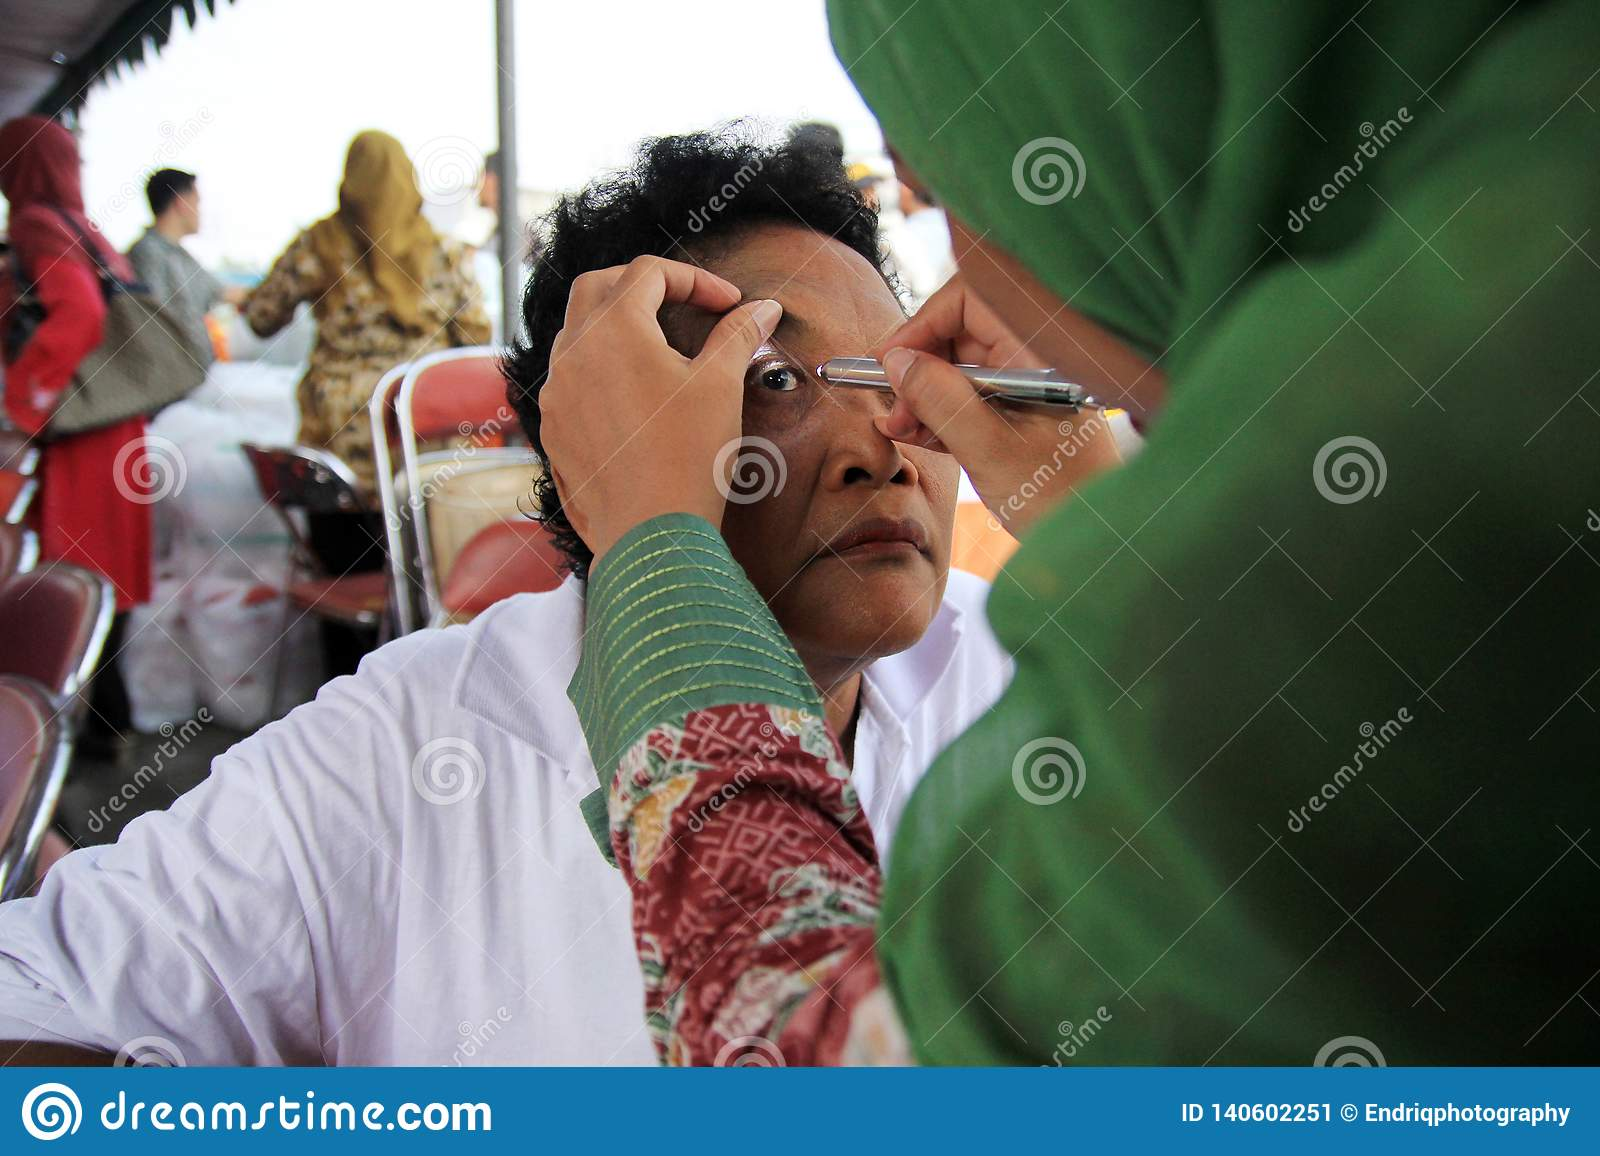 Surabaya indonesia, may 21, 201surabaya indonesia, may 21, 2014. a health worker is being check the patient`s eye health.